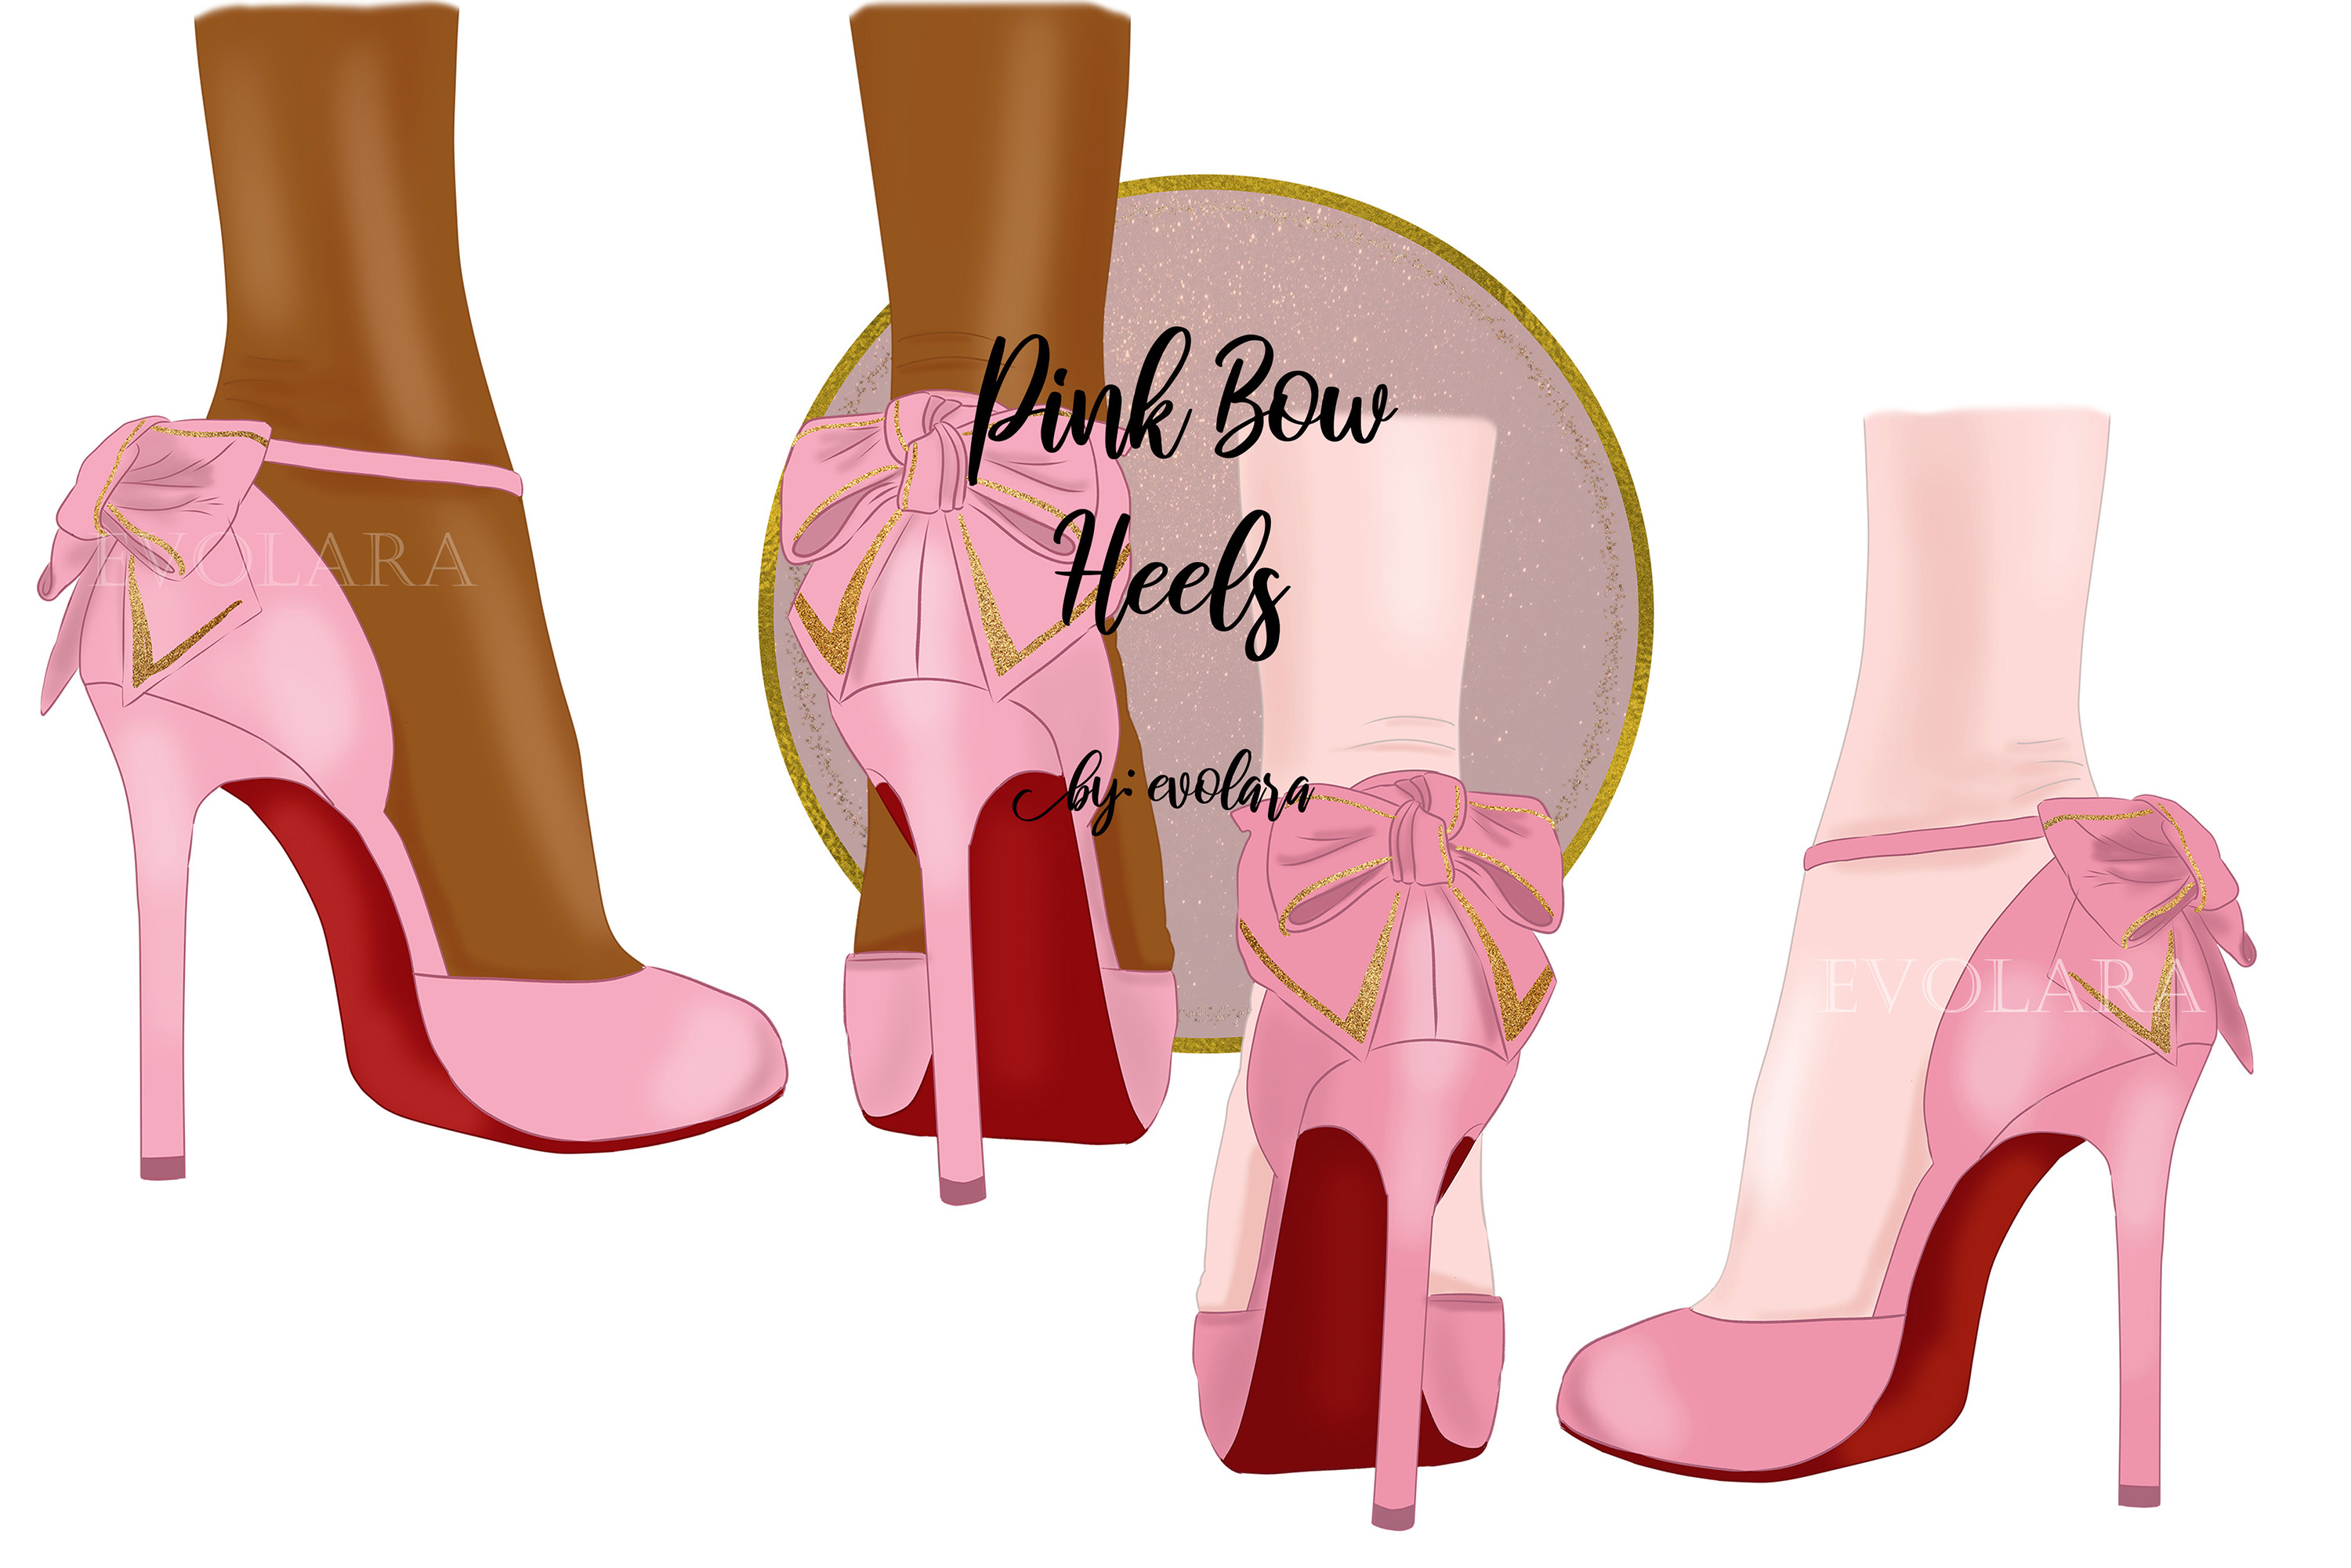 Download Free Pink High Heel Shoes Clipart Fashion Graphic By Evolara for Cricut Explore, Silhouette and other cutting machines.